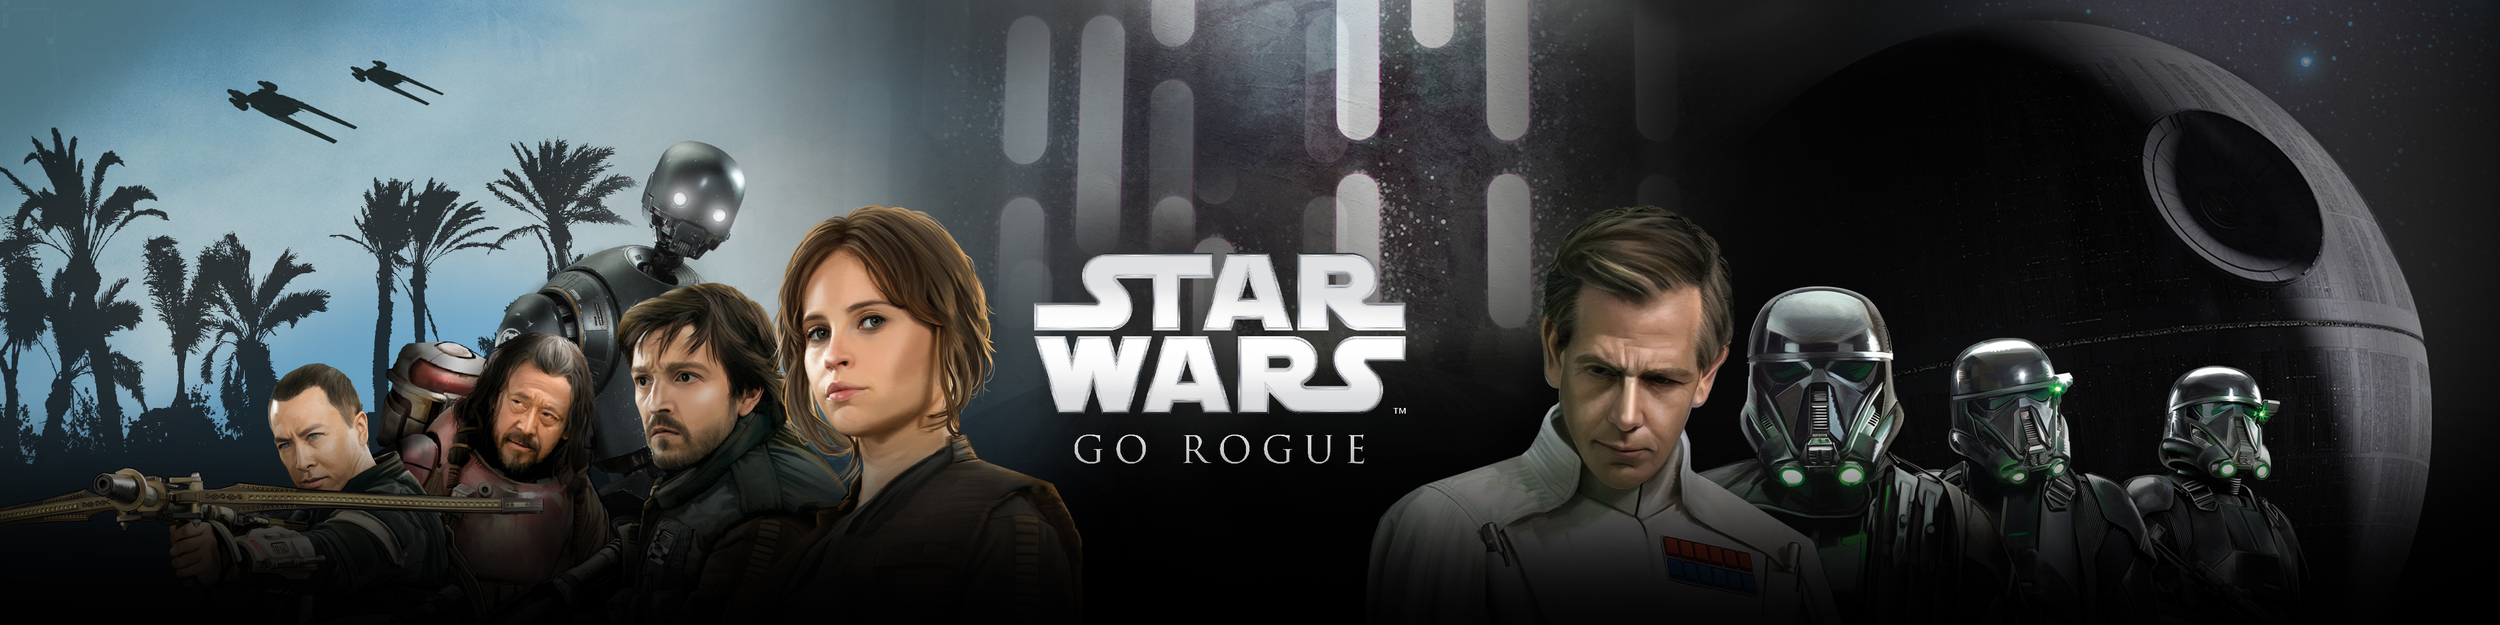 Apple_Rogue_Banner_v11_A.png